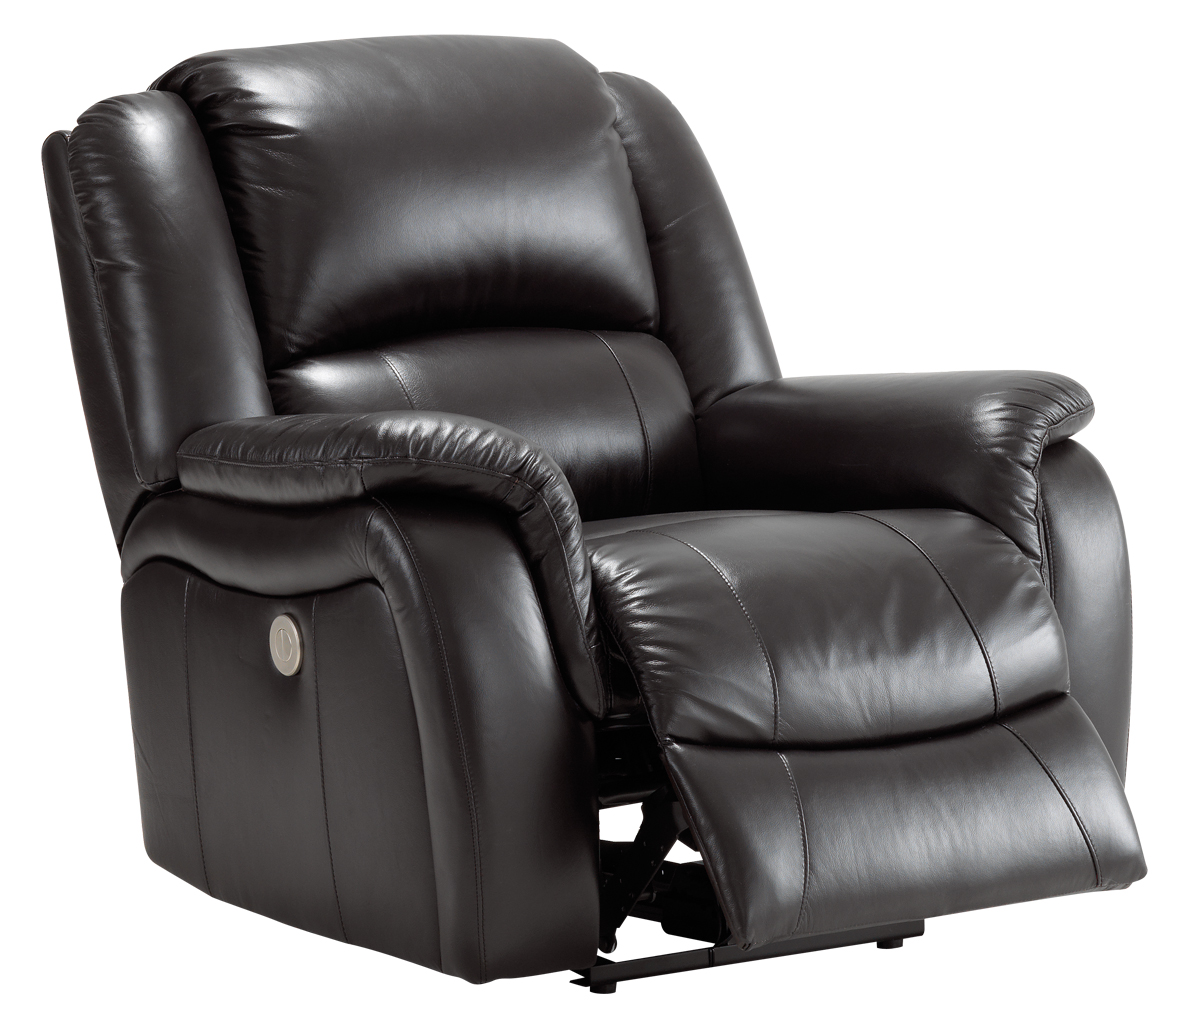 Image of: Best Leather Recliner Chair